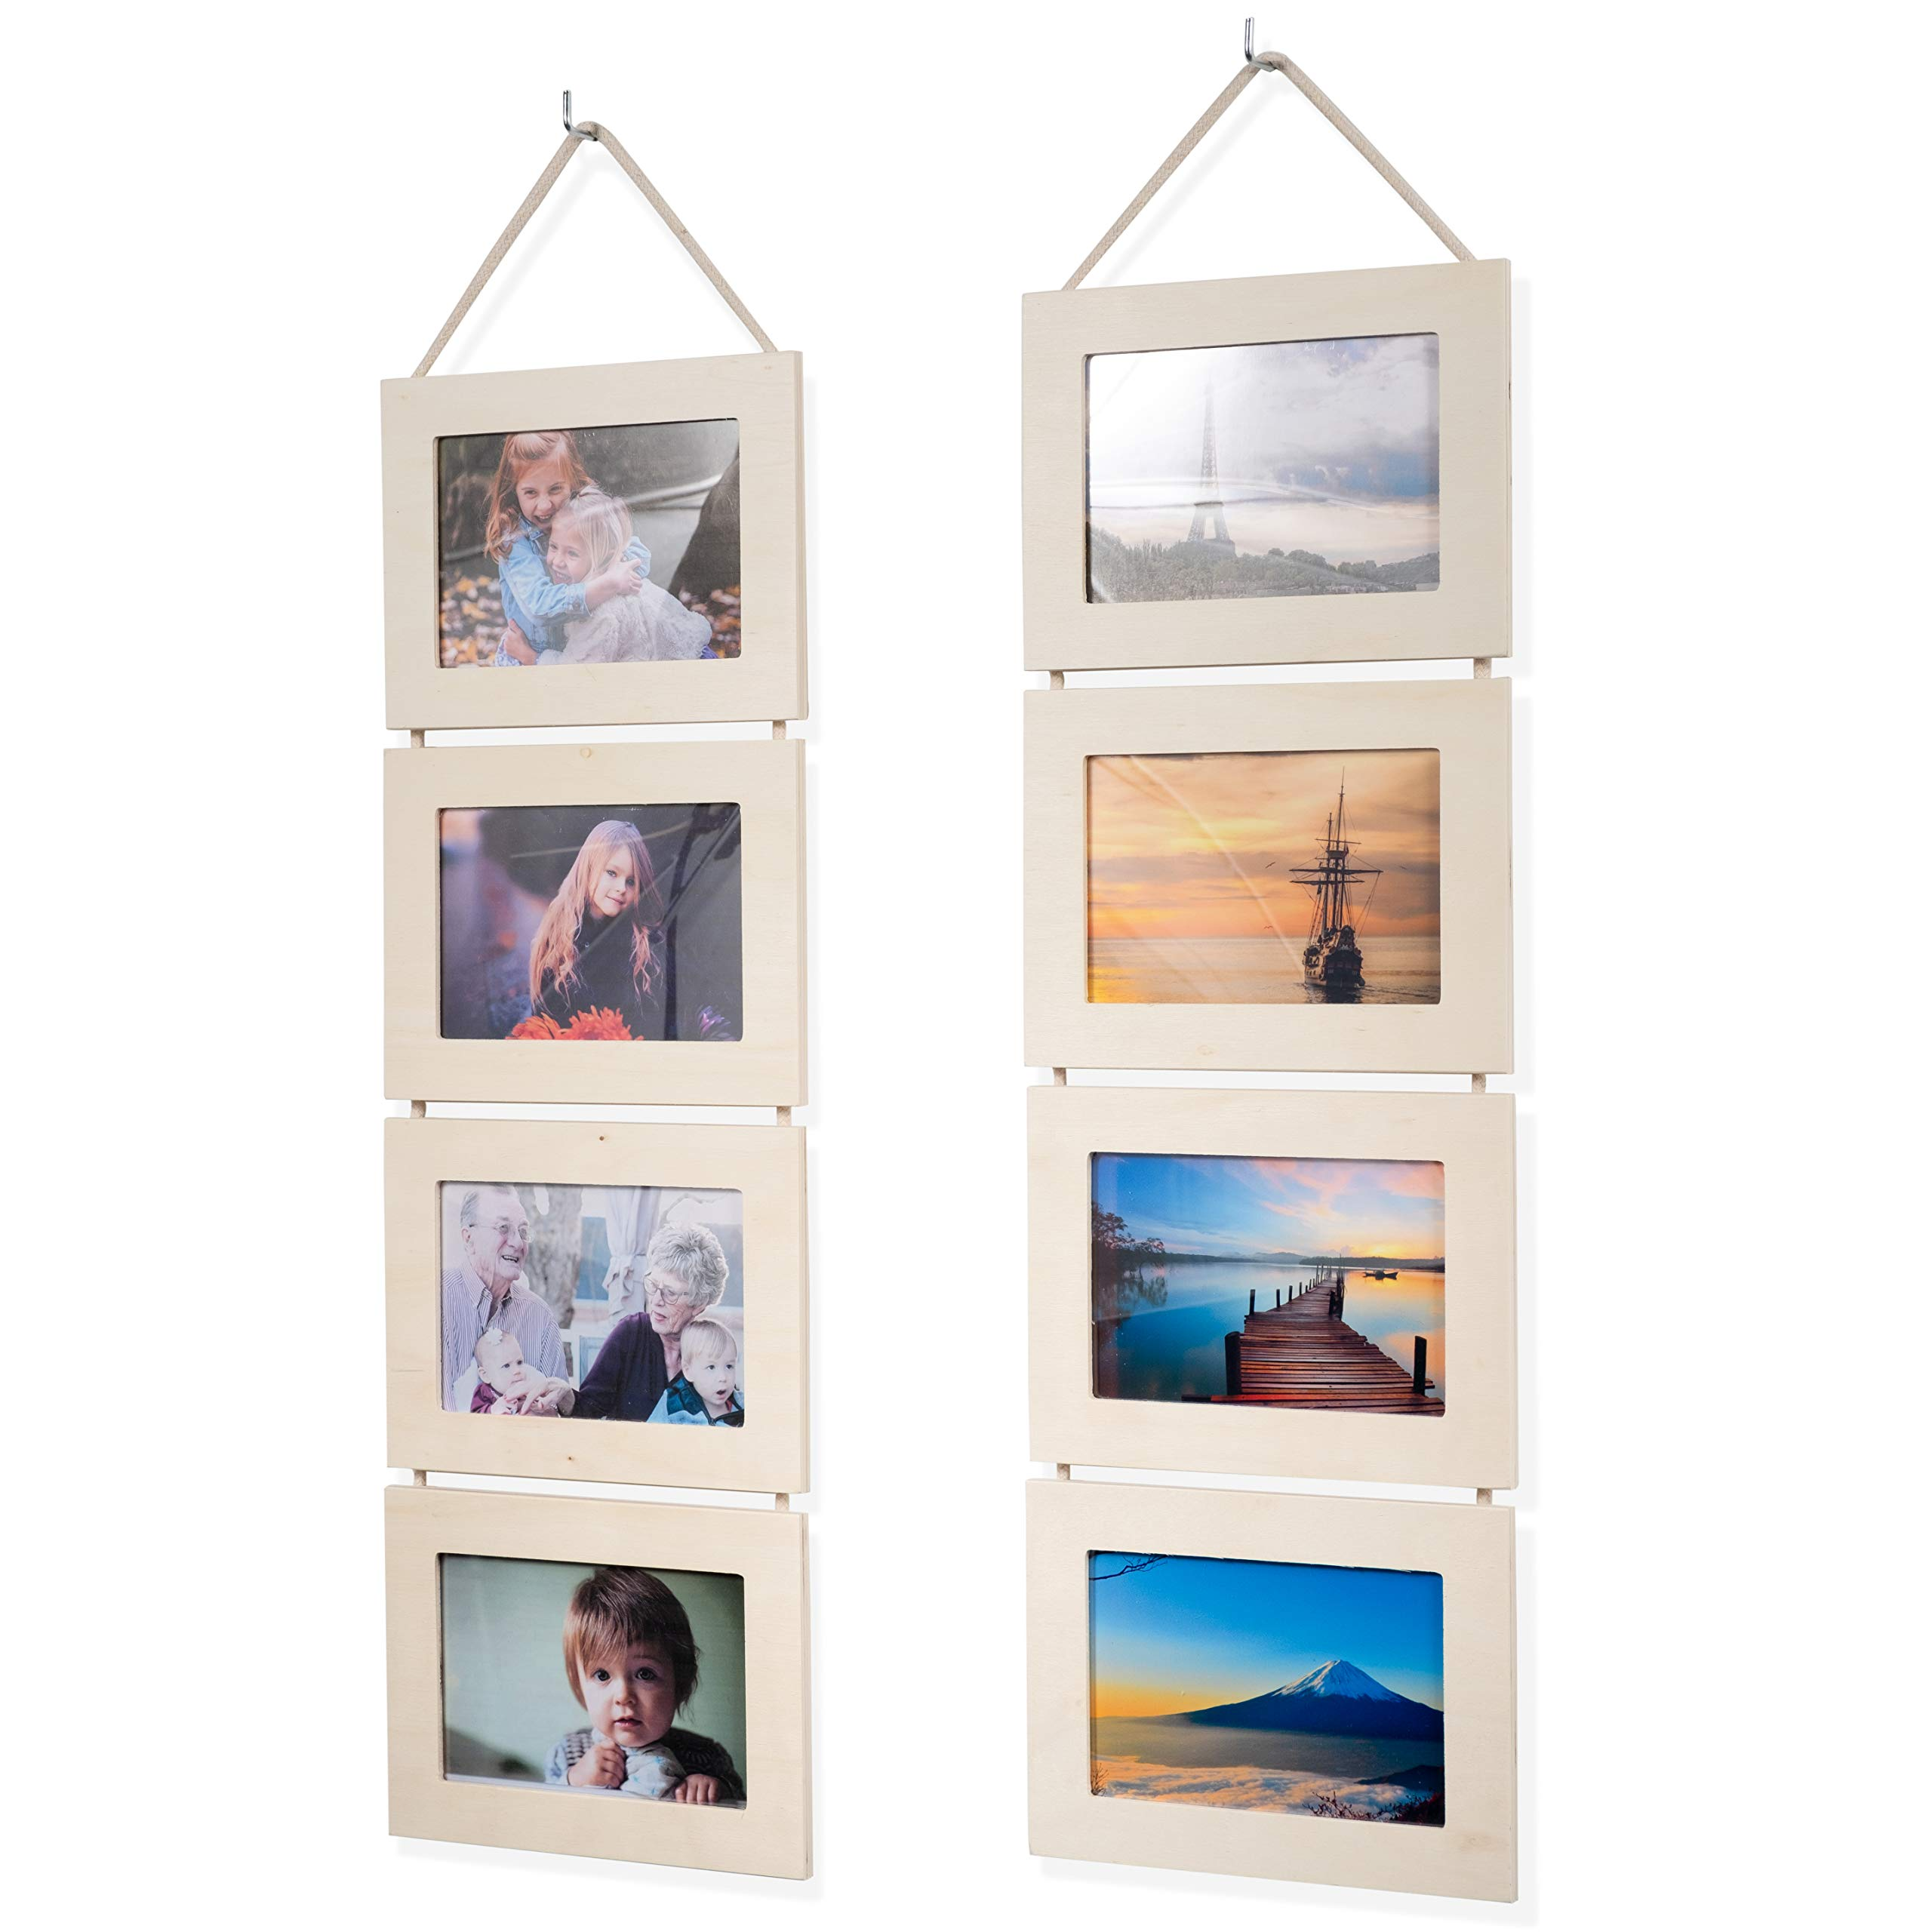 Wallniture Wood Photo Collage Picture Frame Natural No Finish Total 8 Opening for 4x6 Inch Photos Wall Mountable Ready to Hang Vertical Gallery Décor by Wallniture